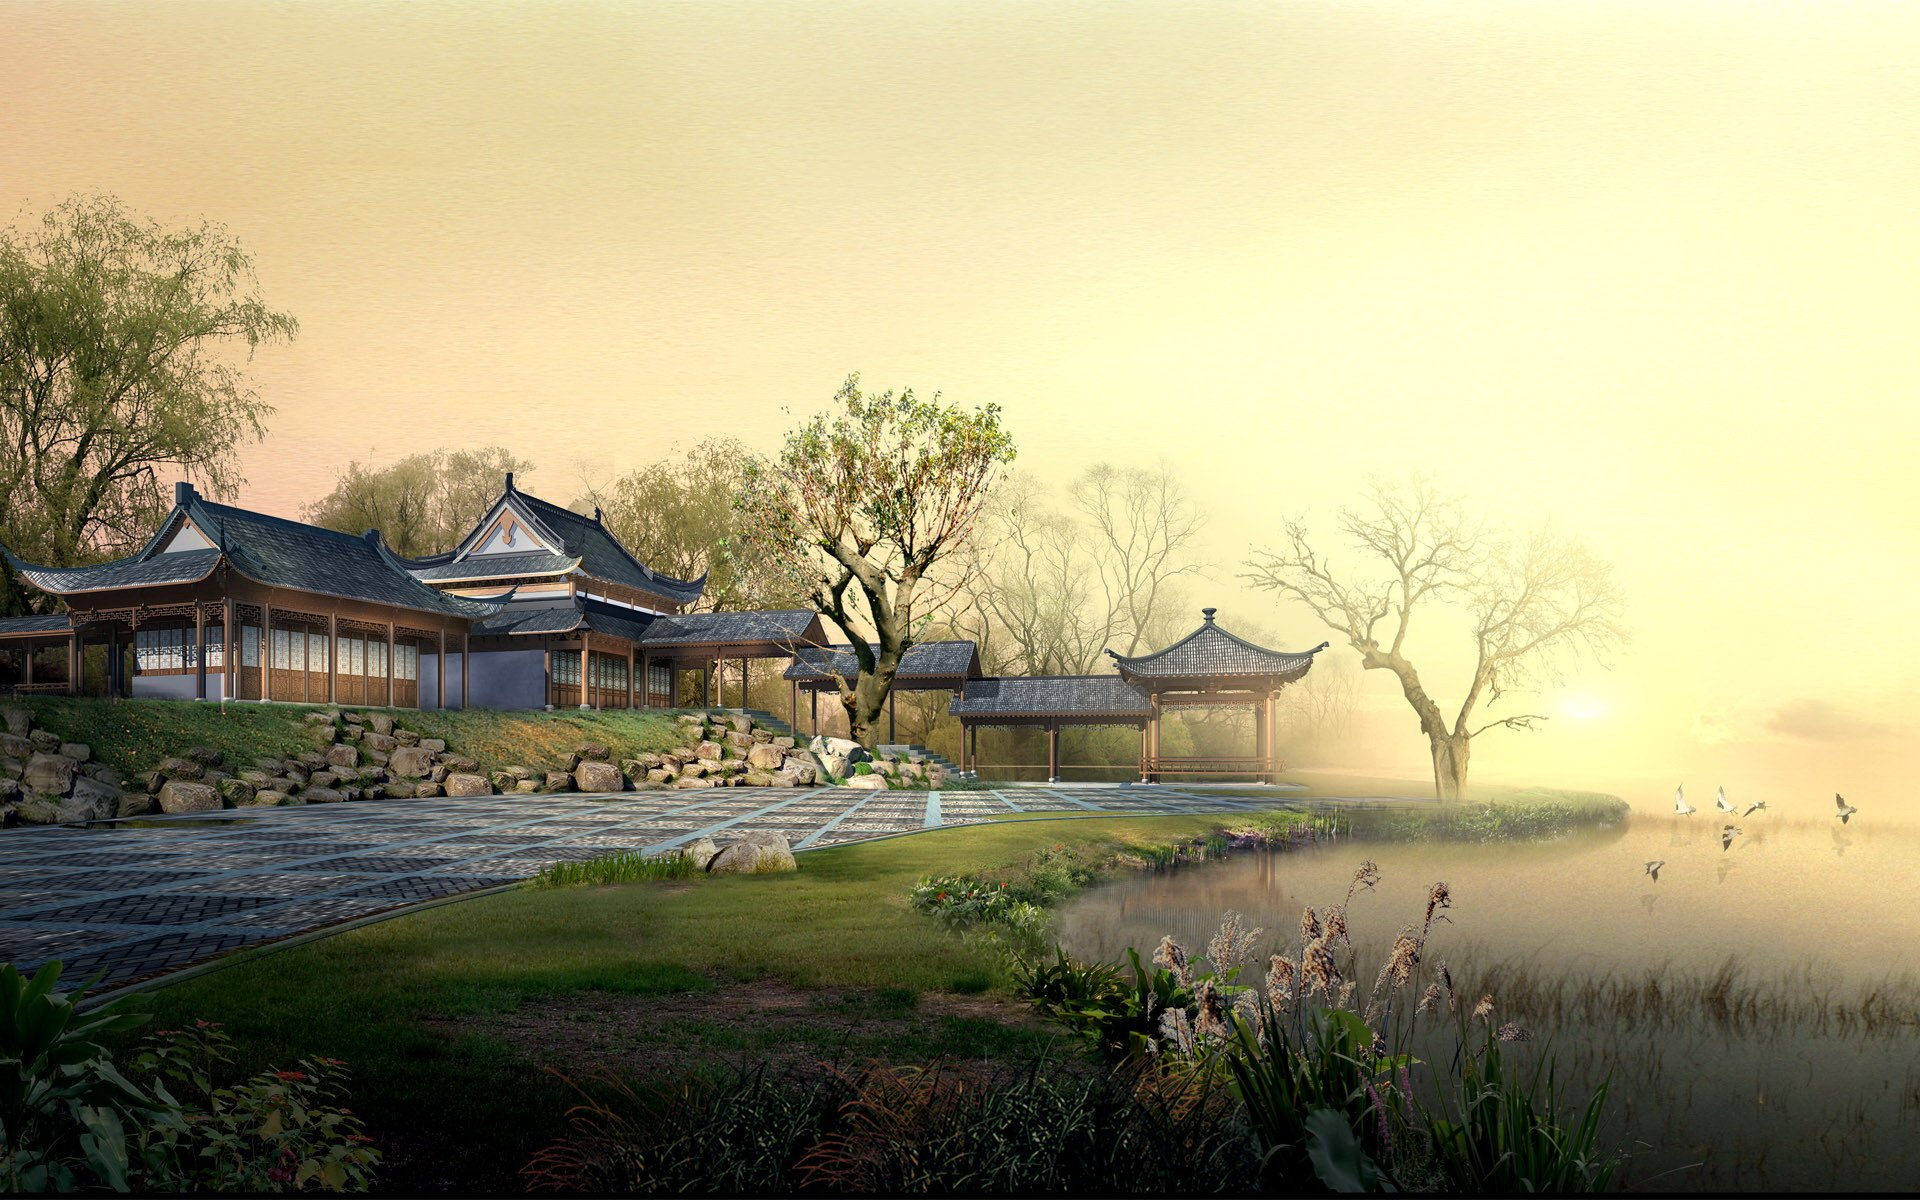 Best 32 Chinese Wallpapers for Desktop on HipWallpaper Chinese 1920x1200